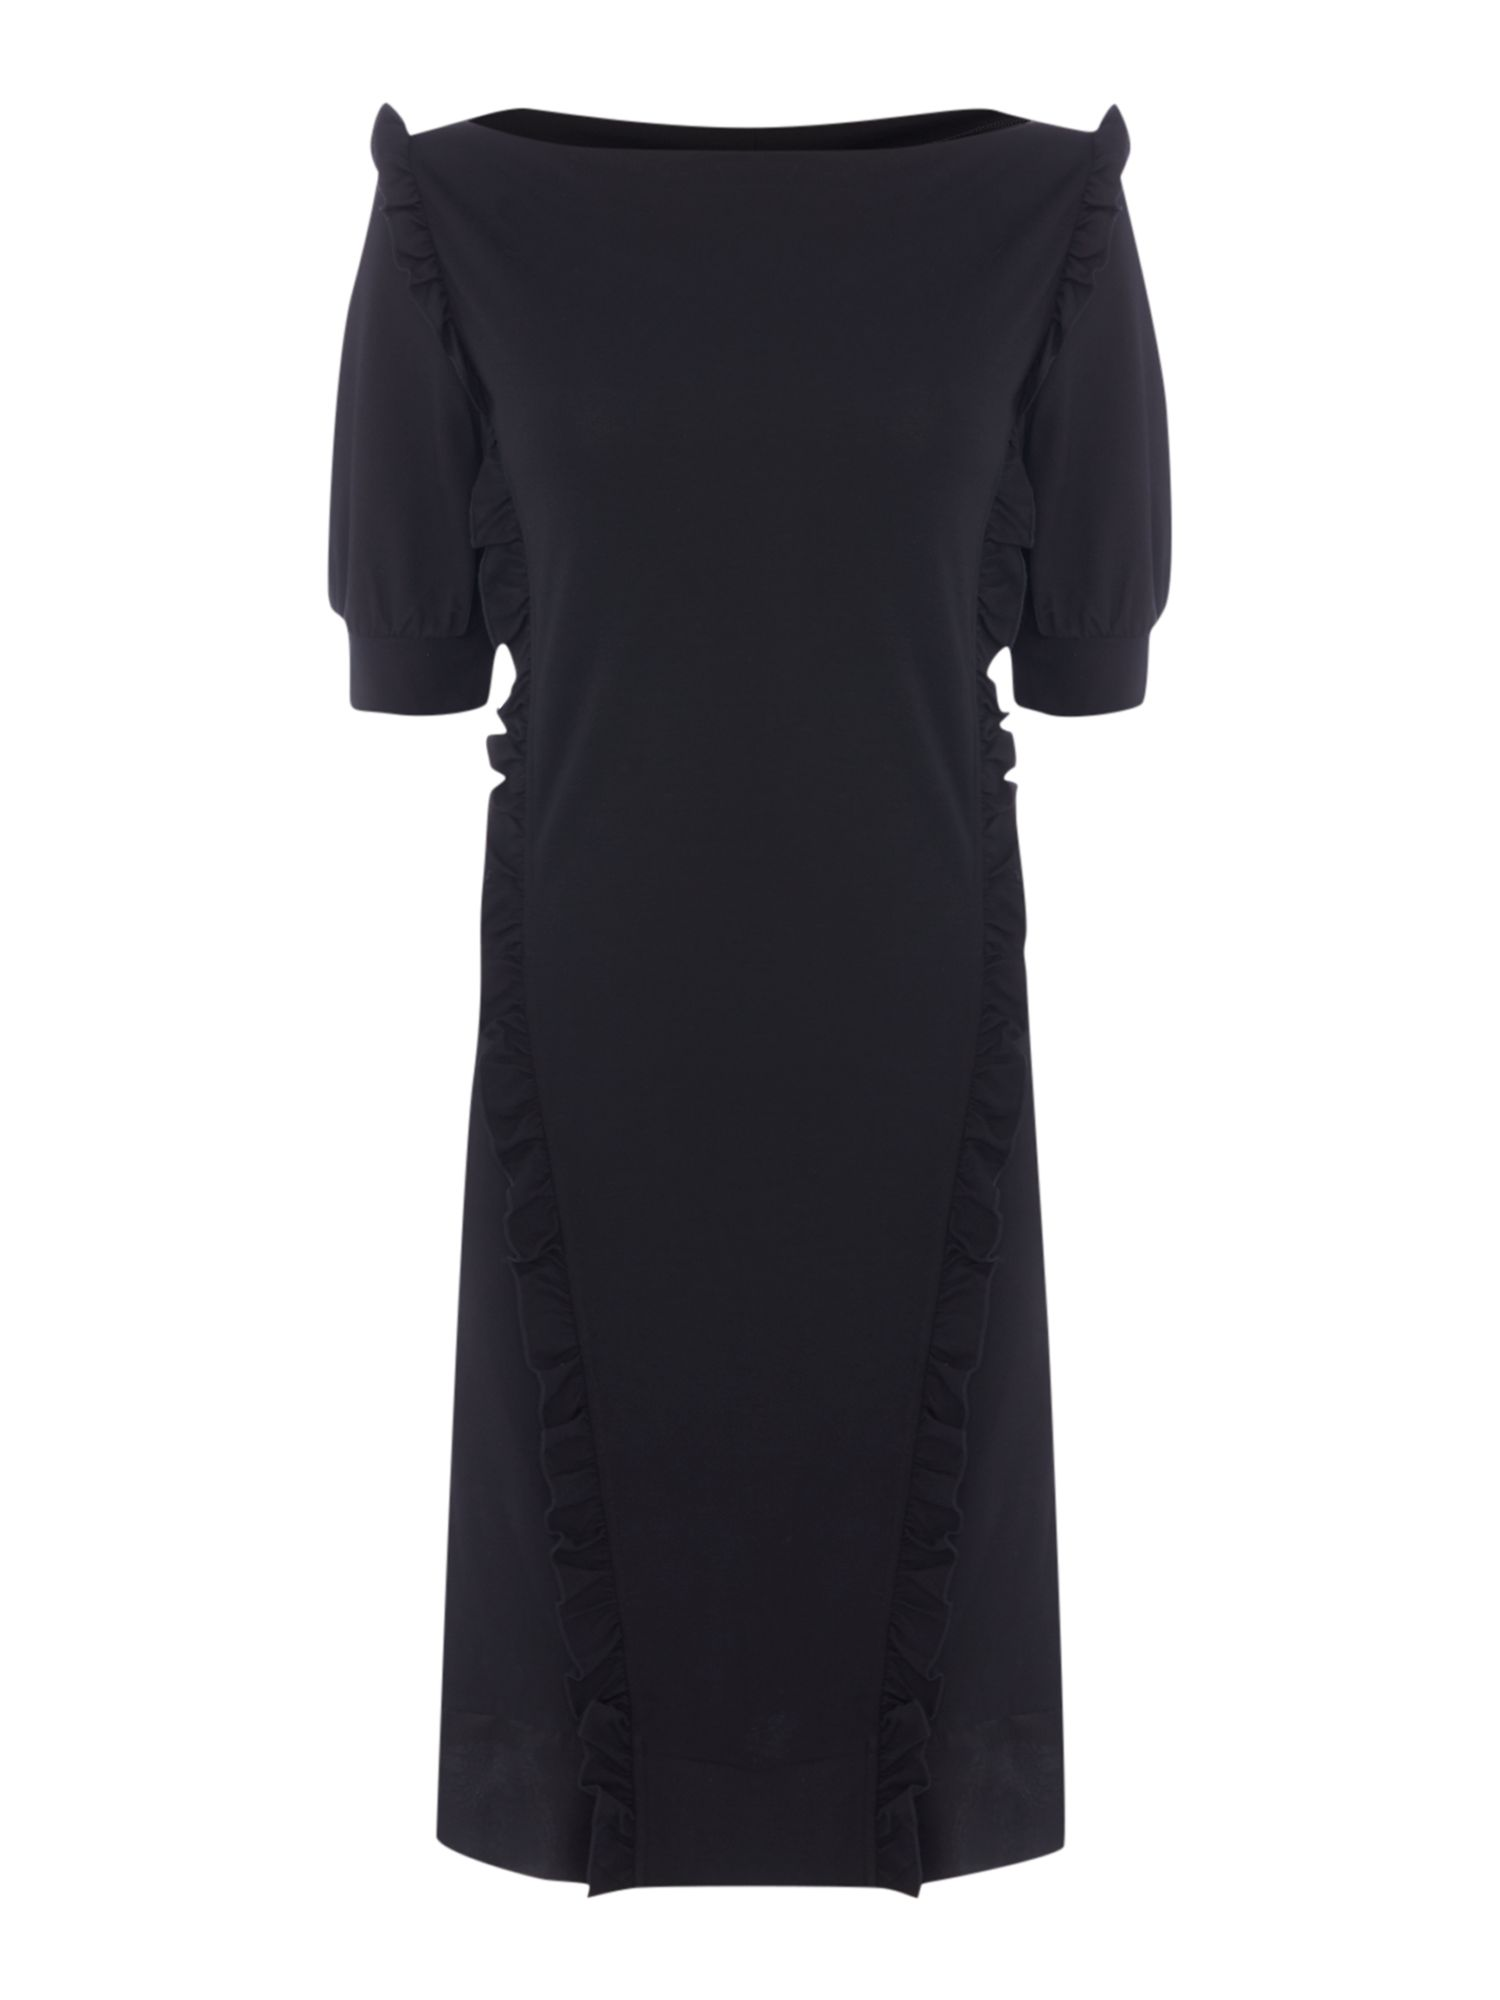 Marella CARACAS boatneck dress with frill detail, Black